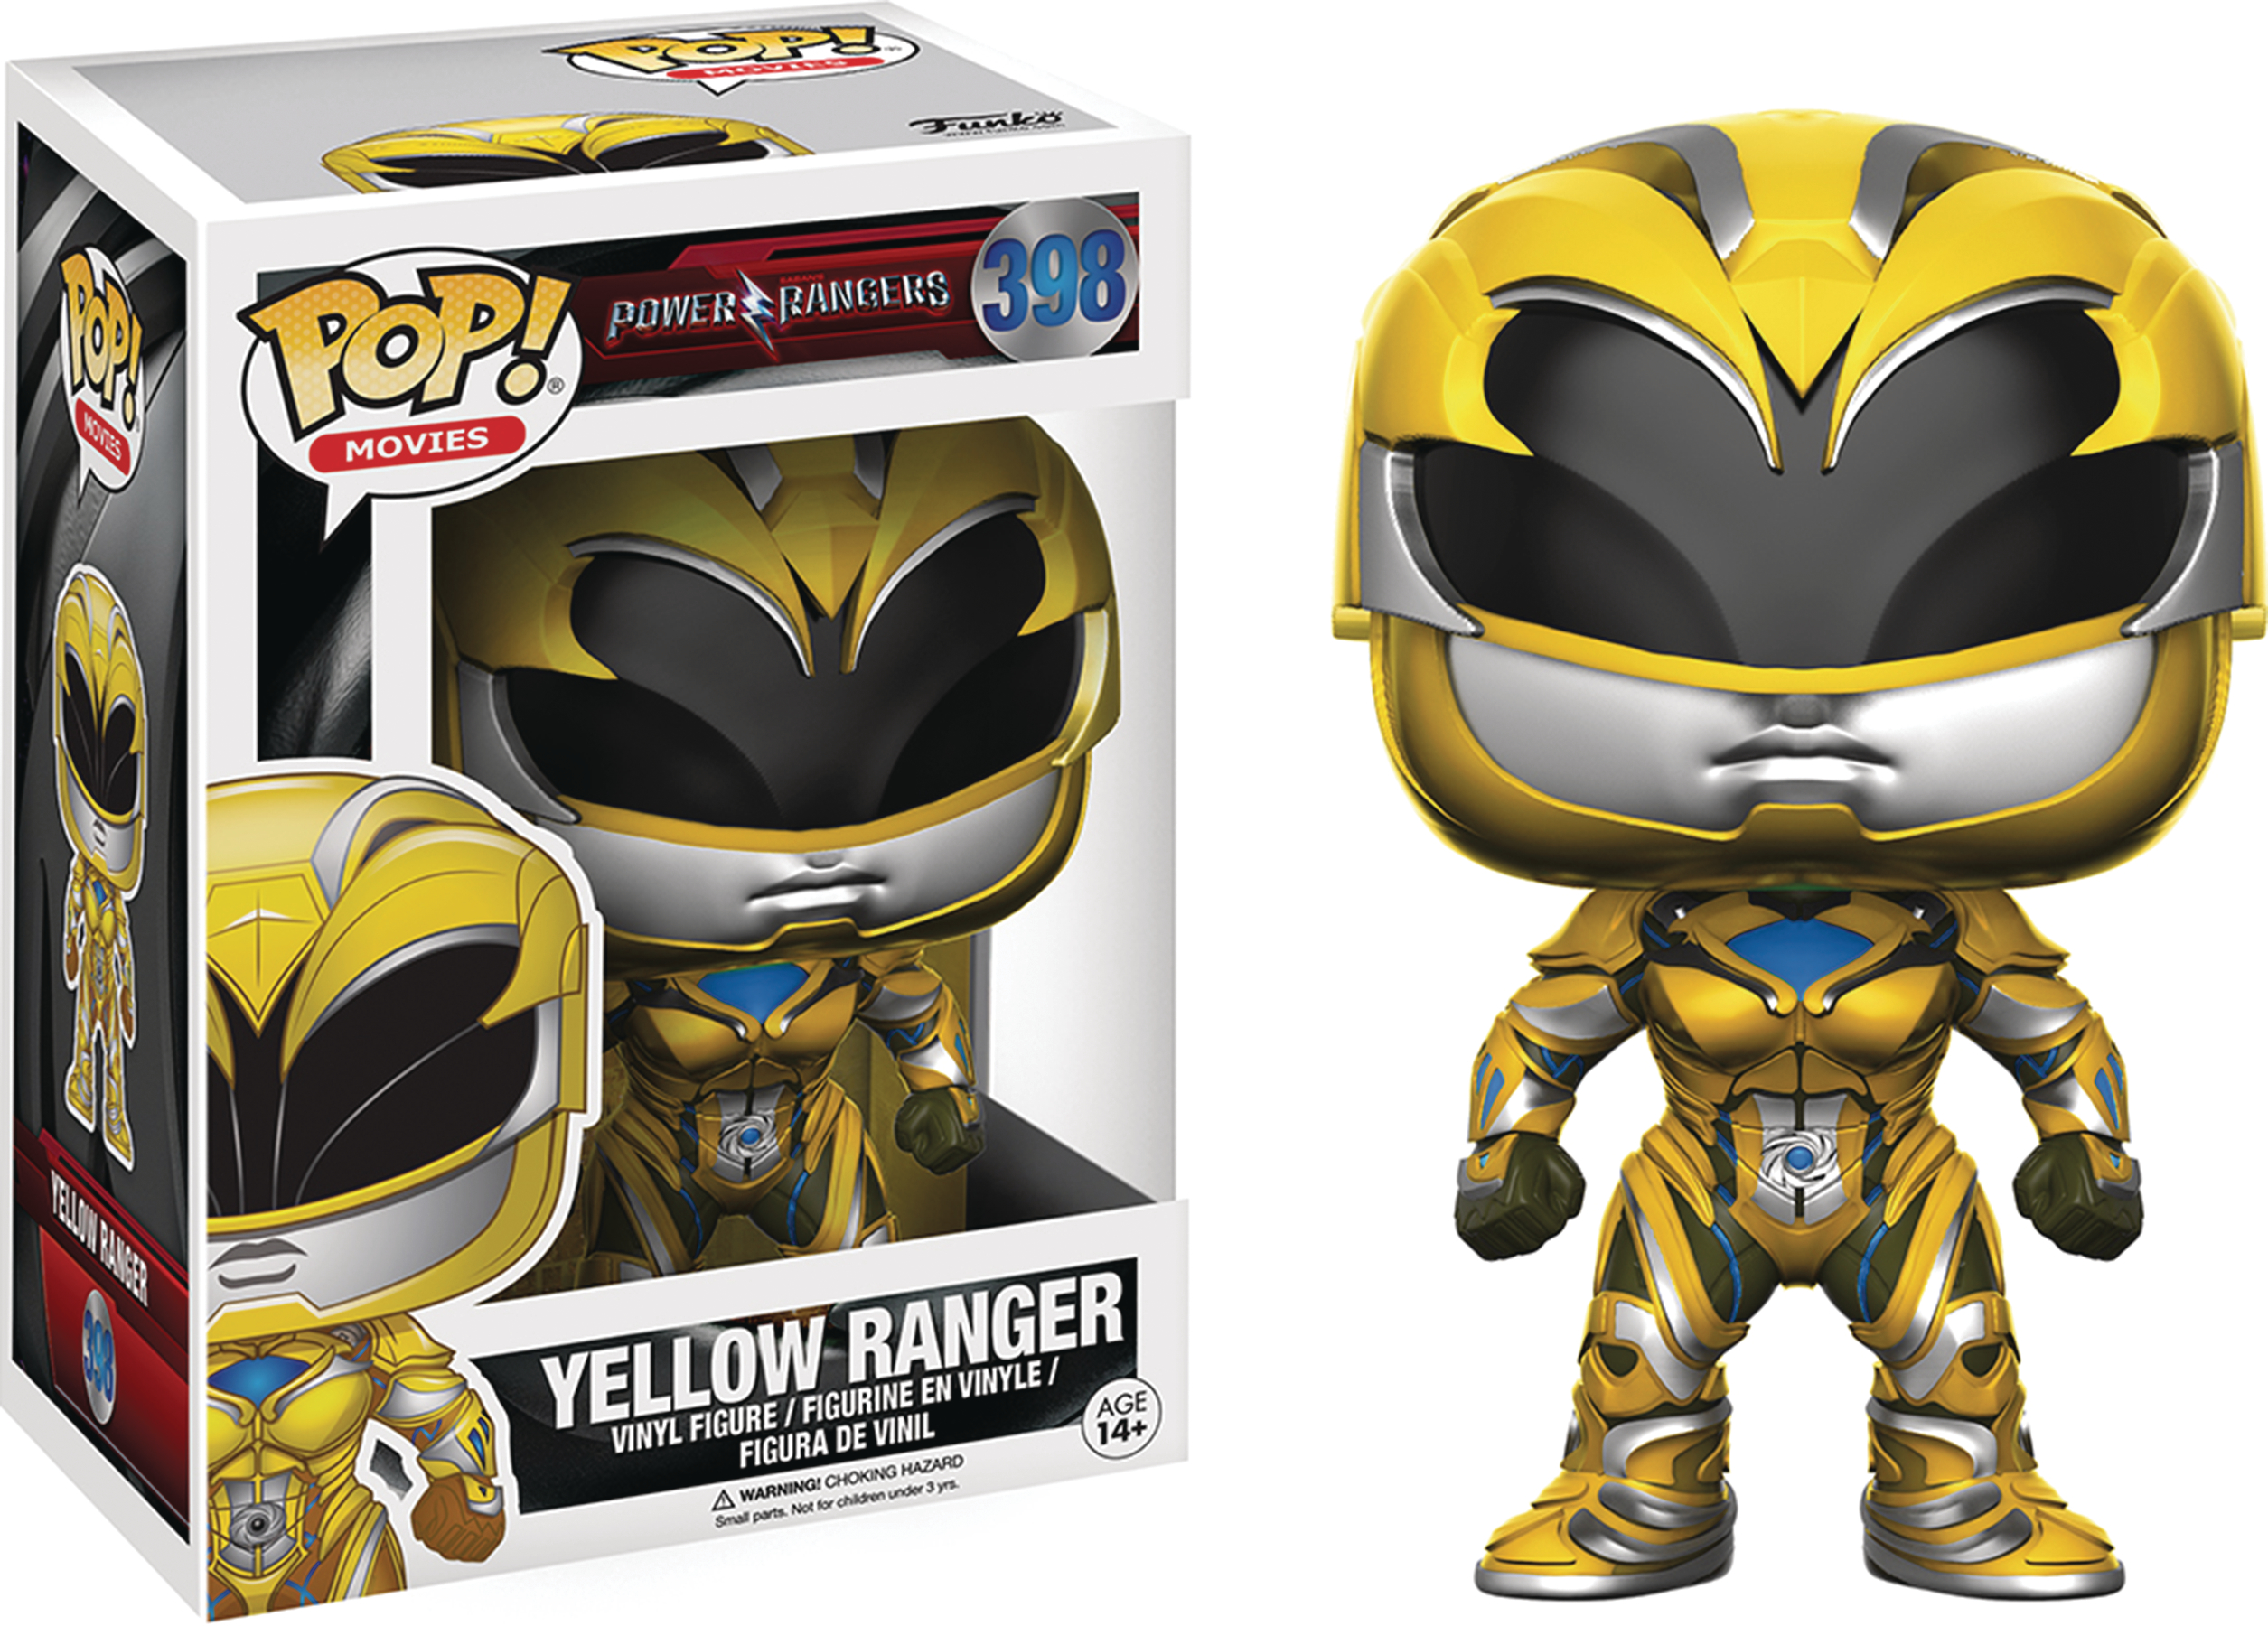 POP POWER RANGERS MOVIE YELLOW RANGER VINYL FIG